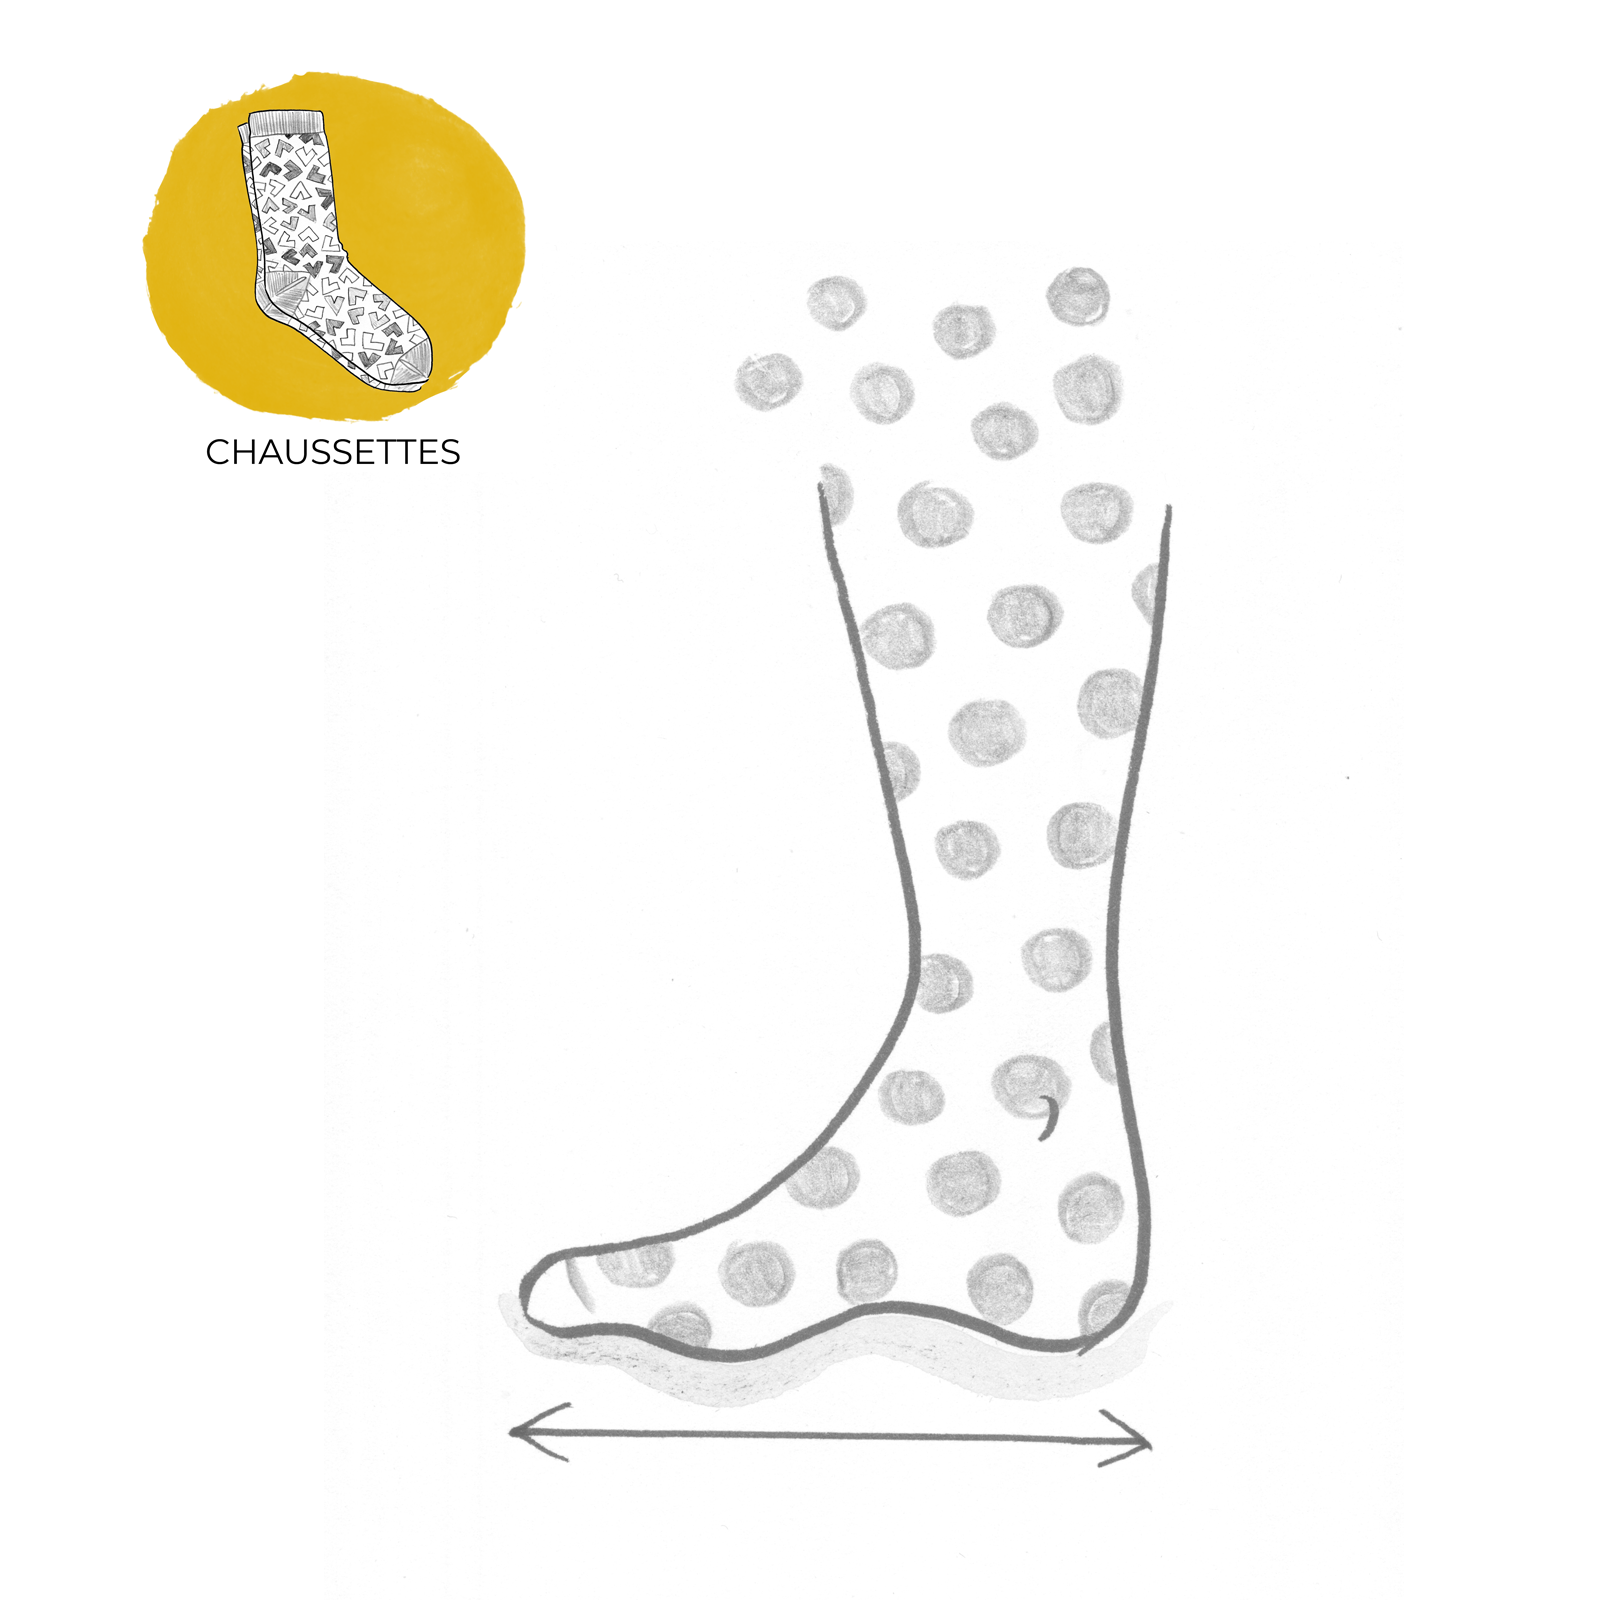 measurment guide_icon_illustration_SOCKS_X2_FR.png